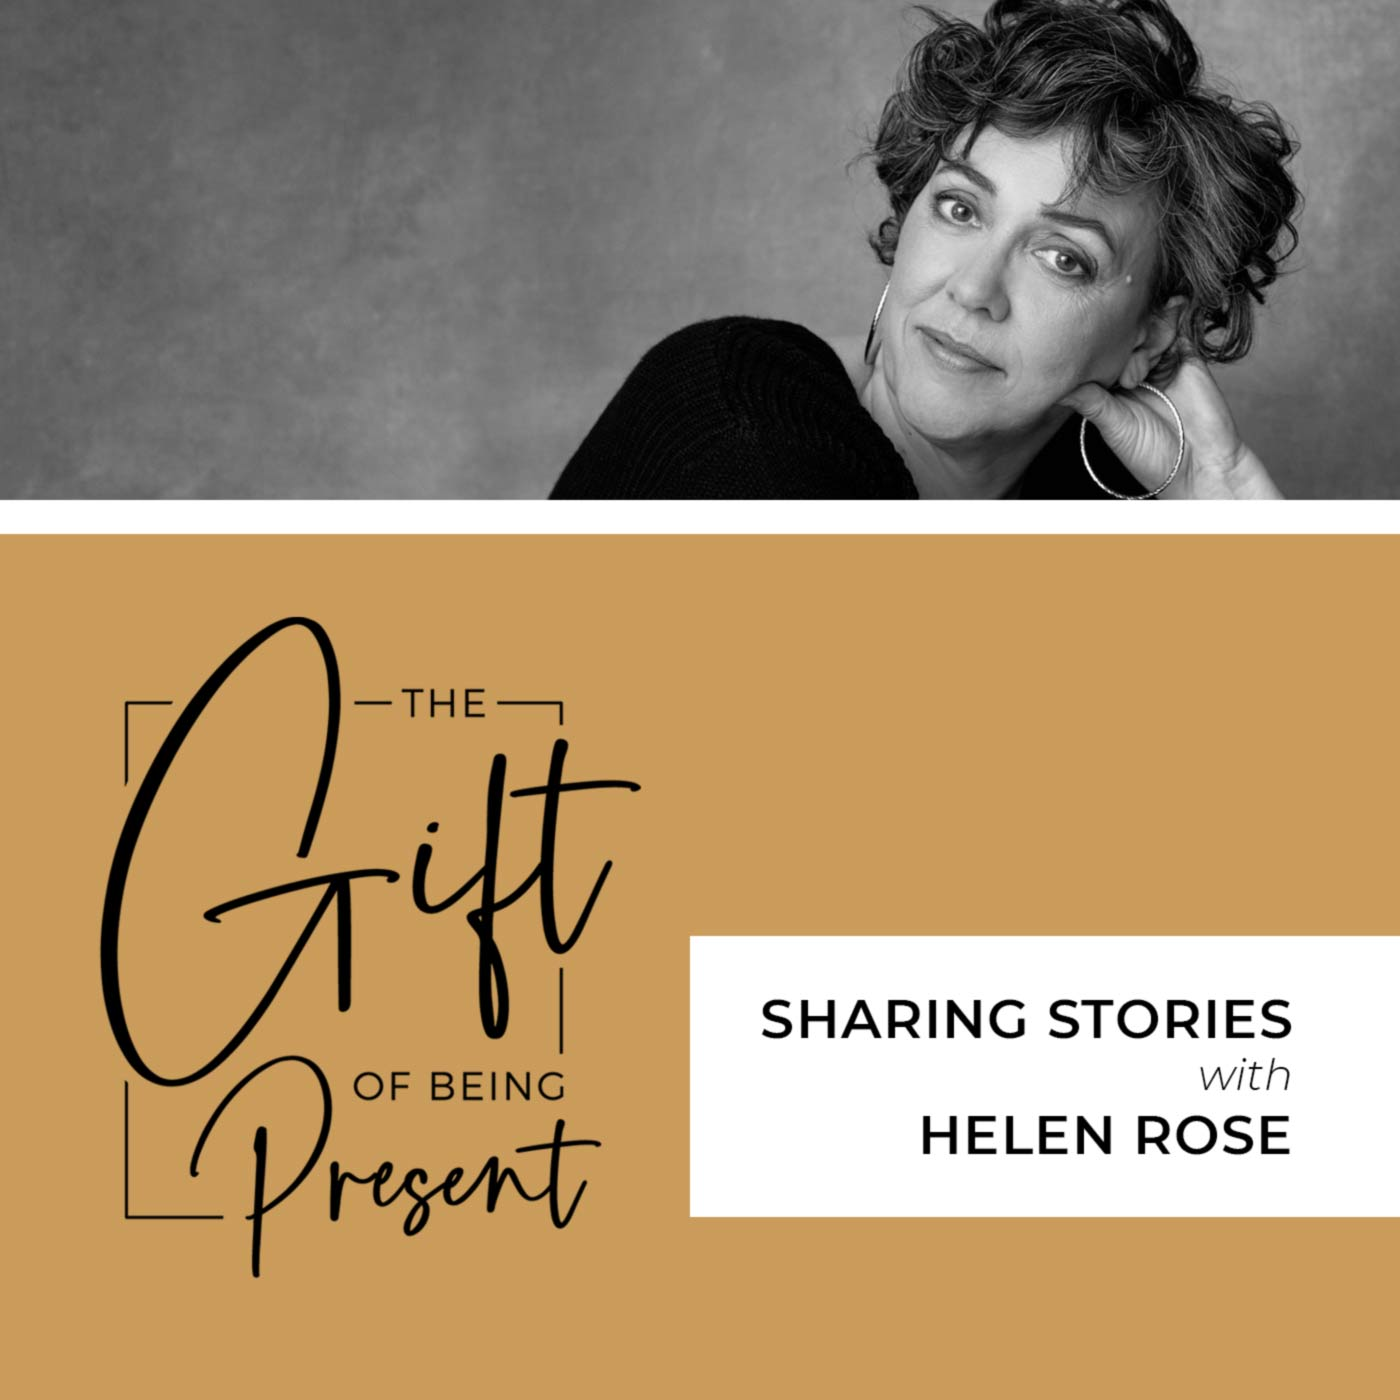 Sharing Stories with Helen Rose